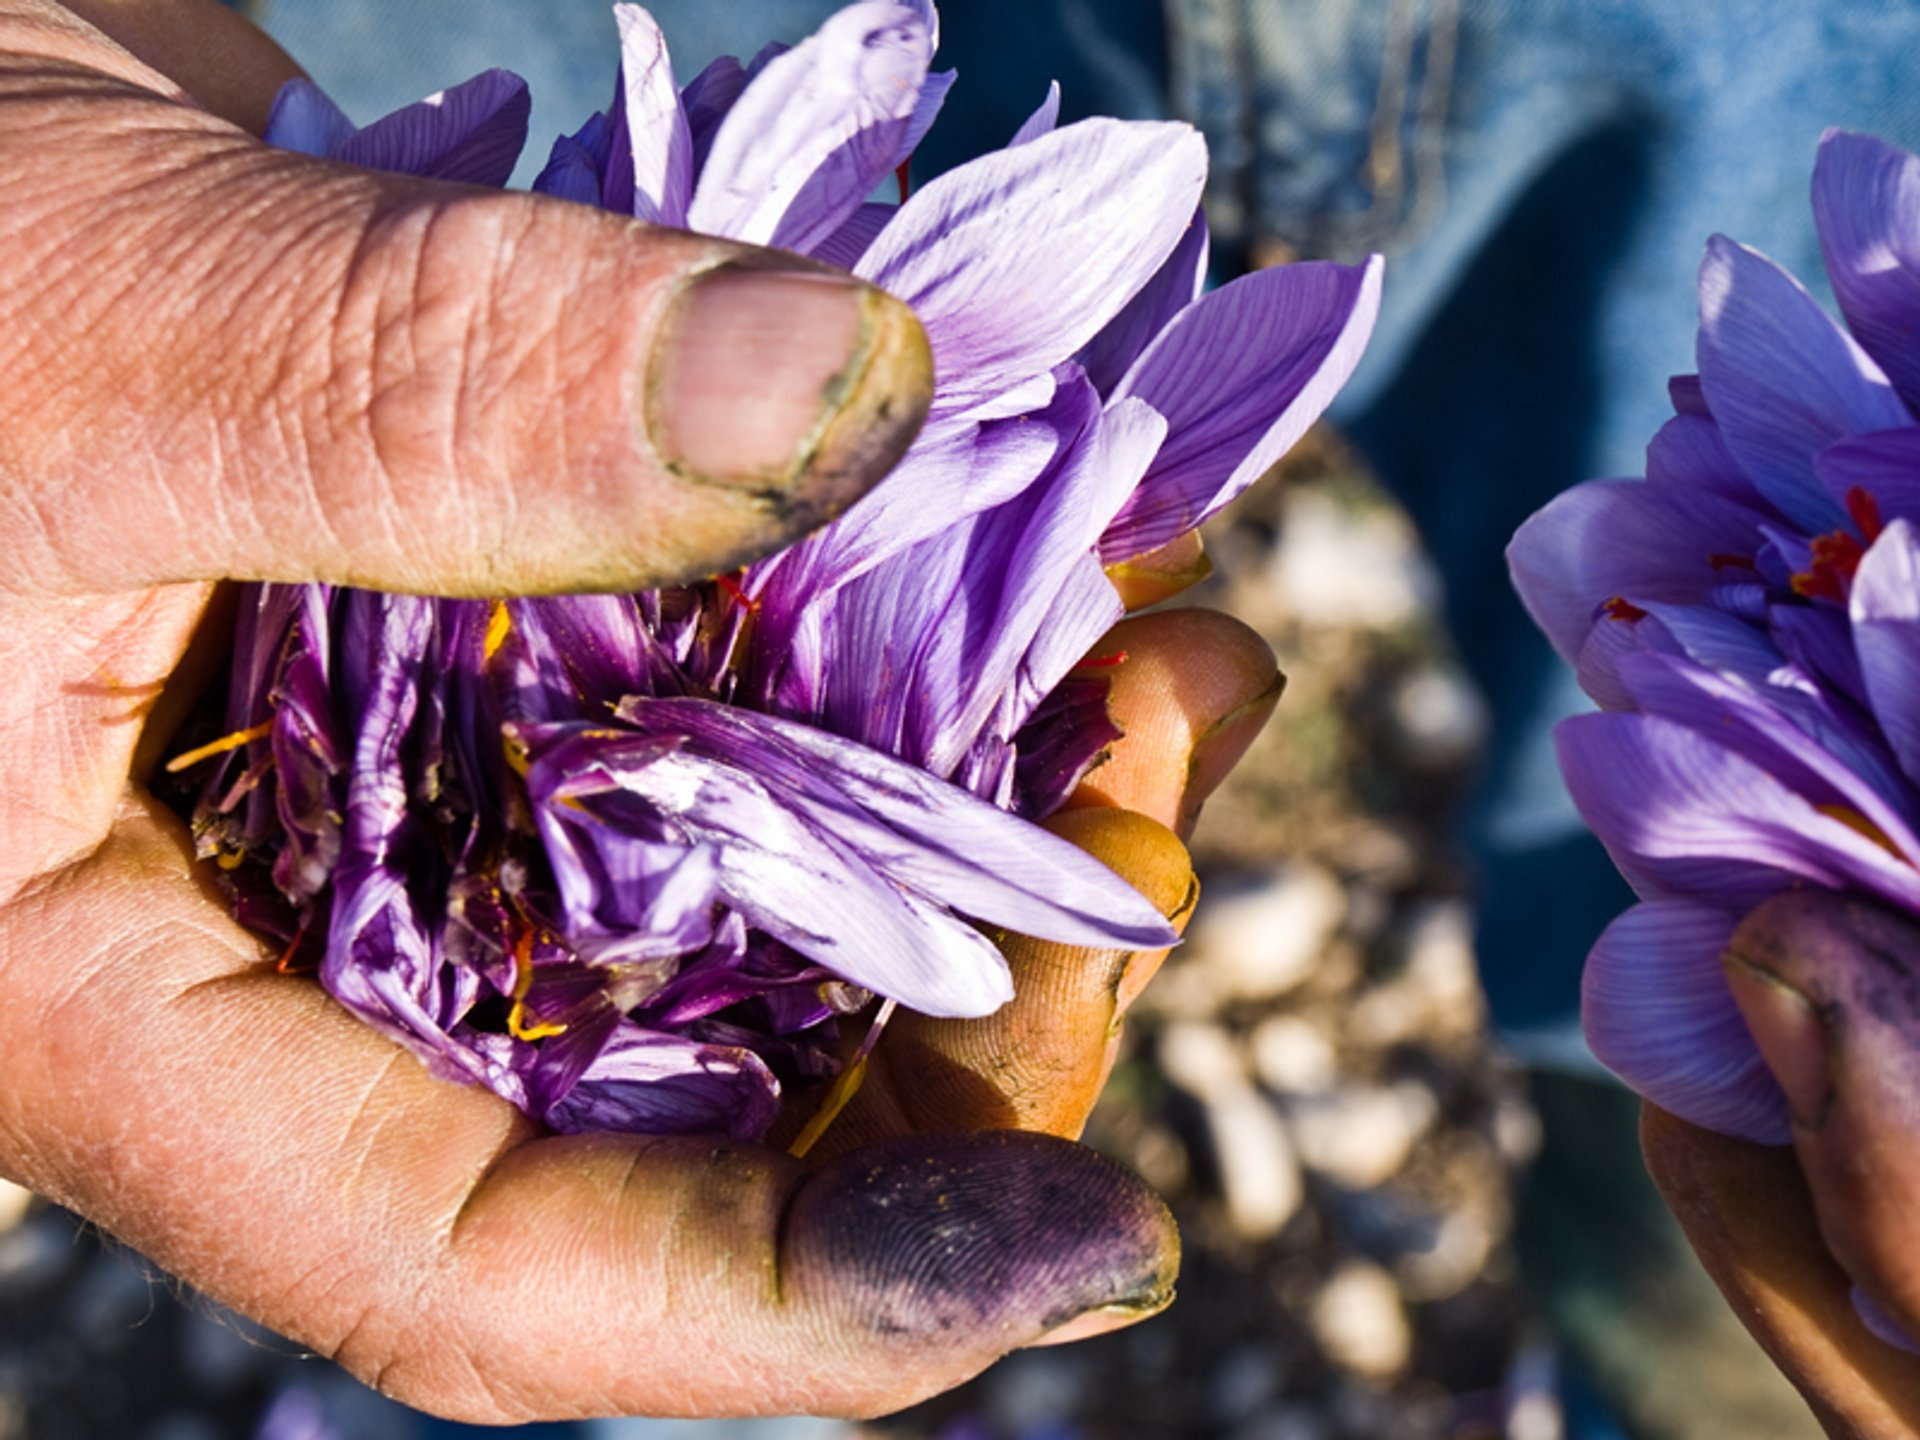 Best time to see Saffron Harvest in Greece 2020